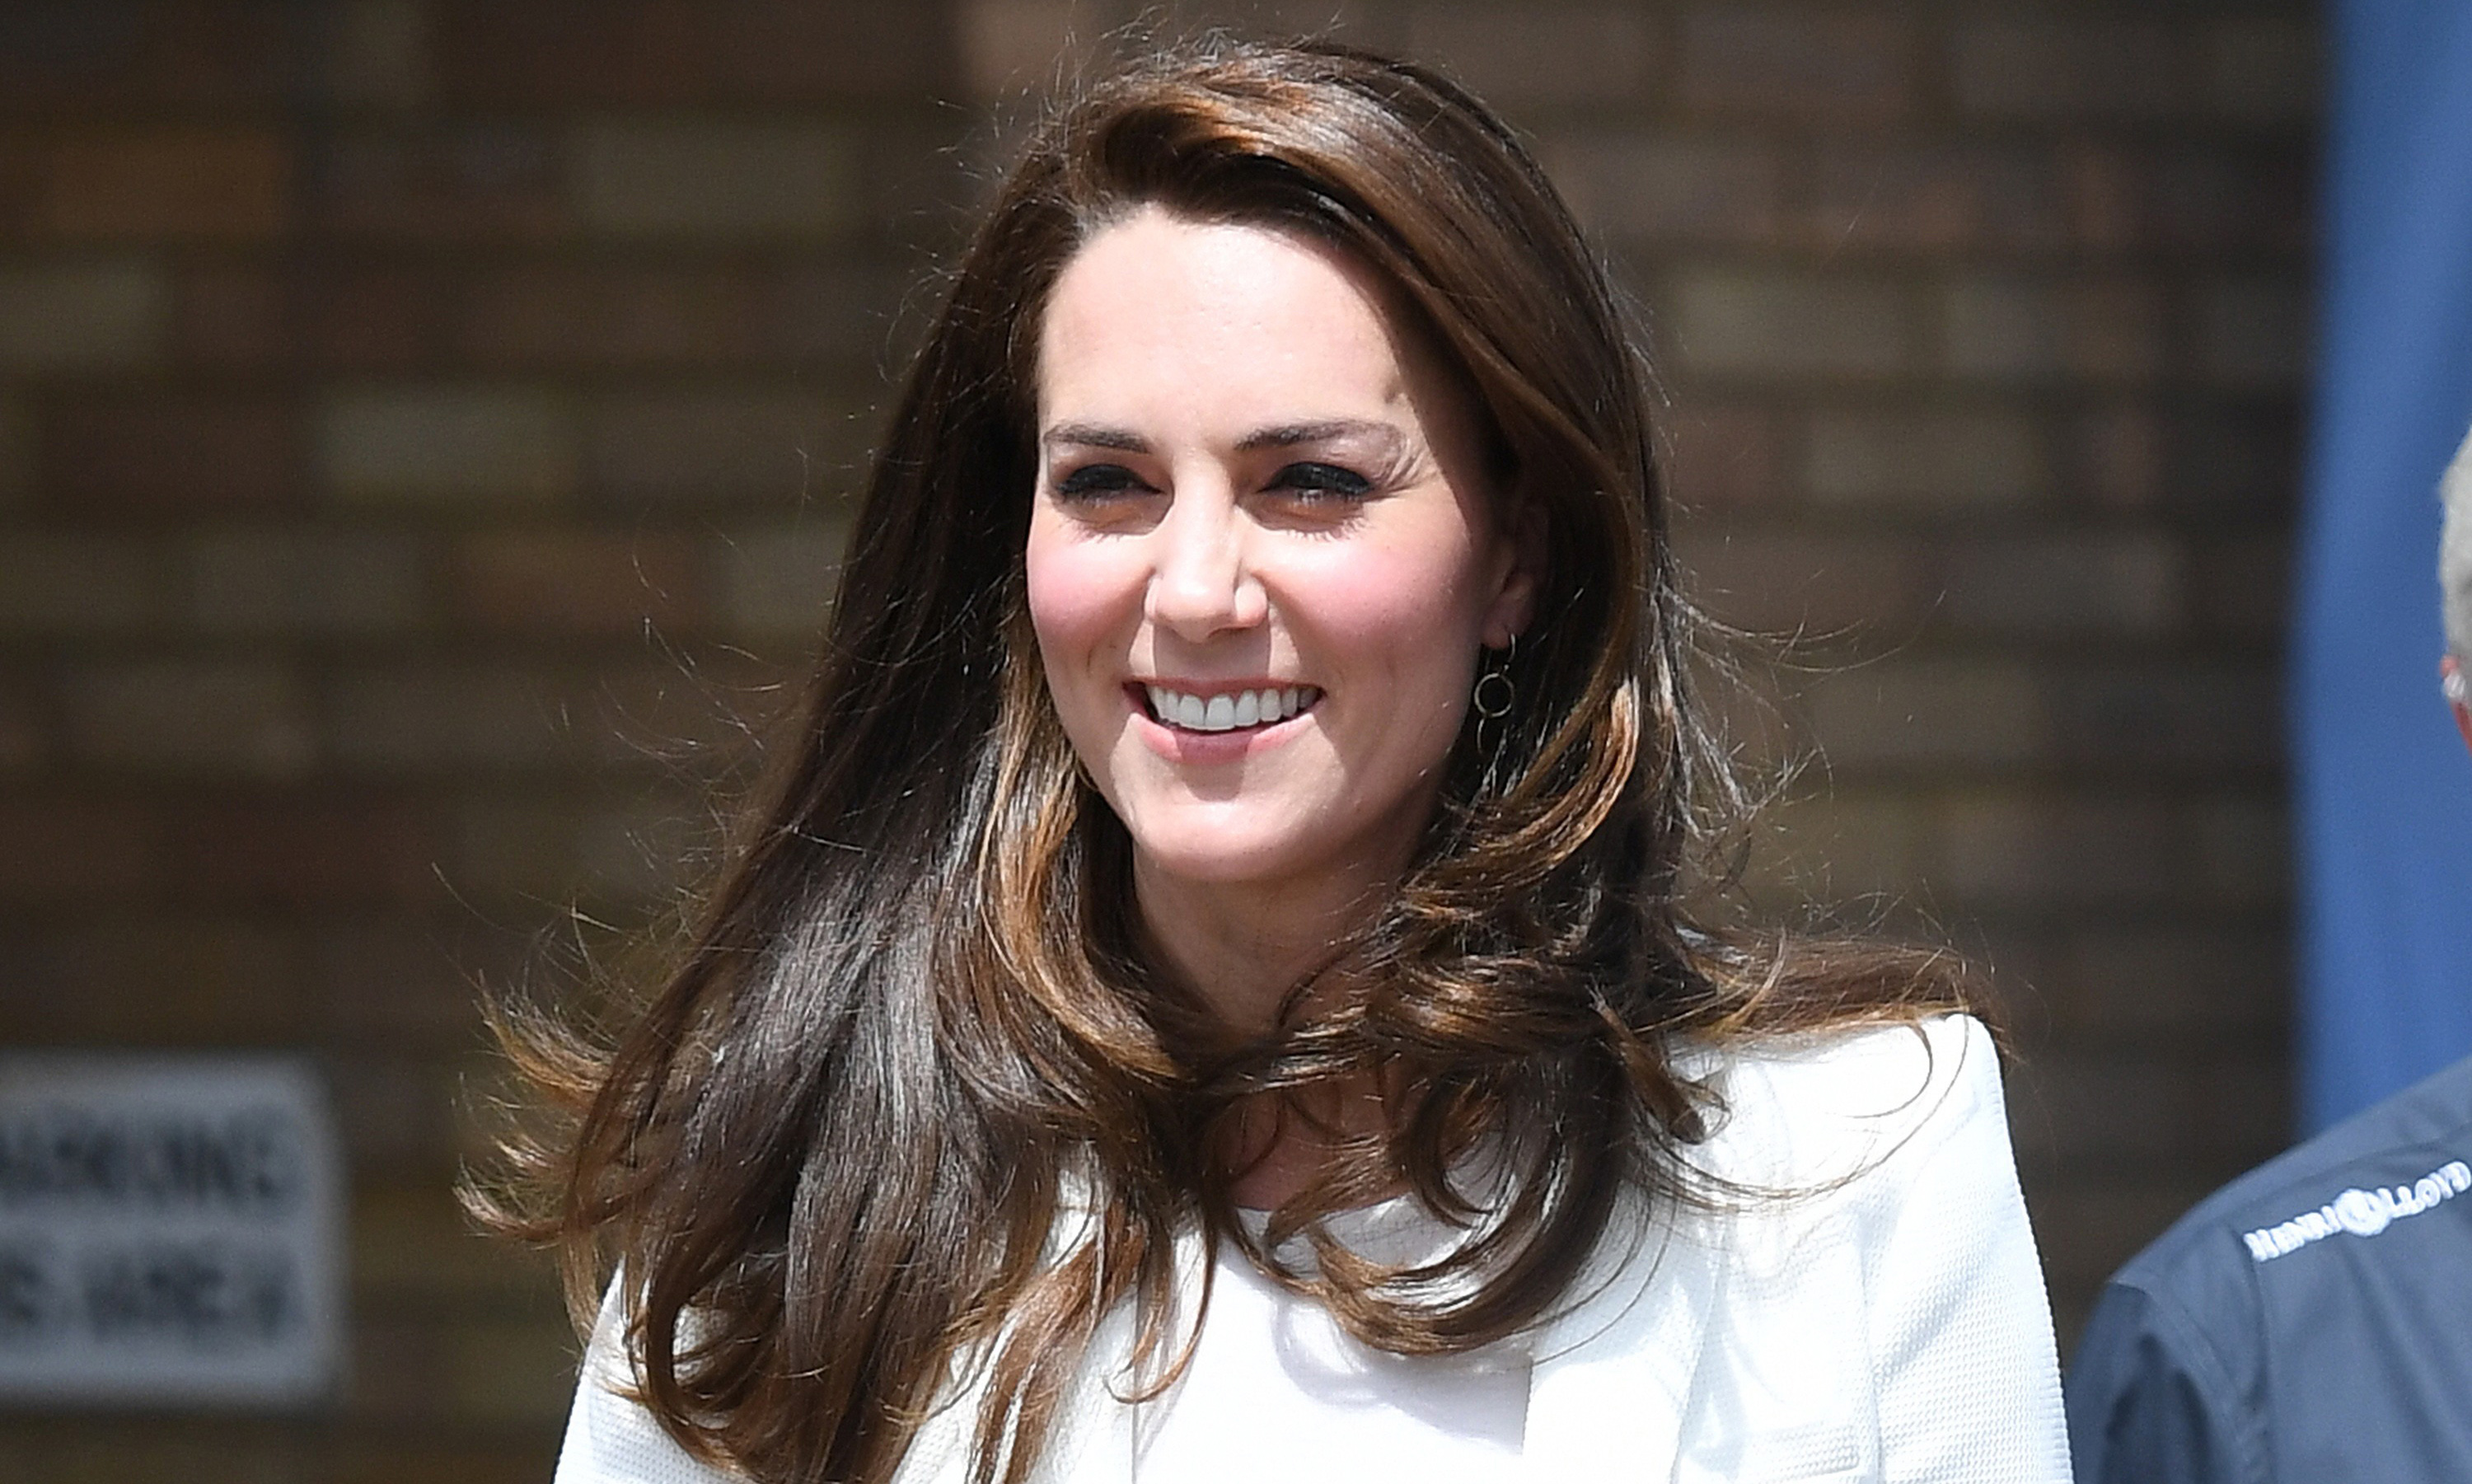 Kate Middleton shows off baby bump